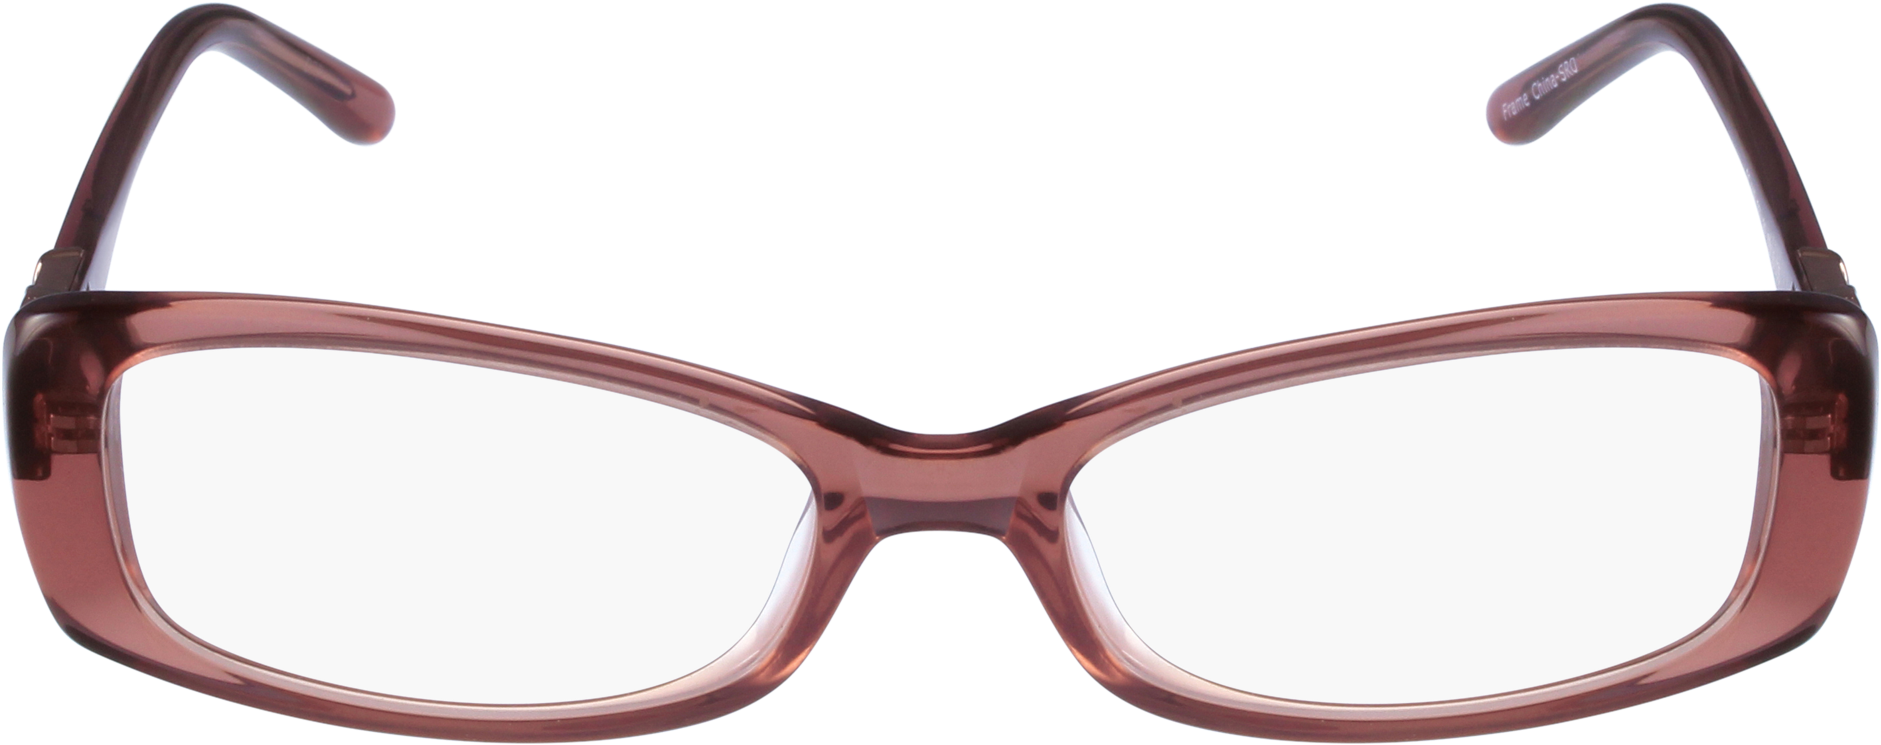 Nerd hello kitty png. Download ray ban glasses